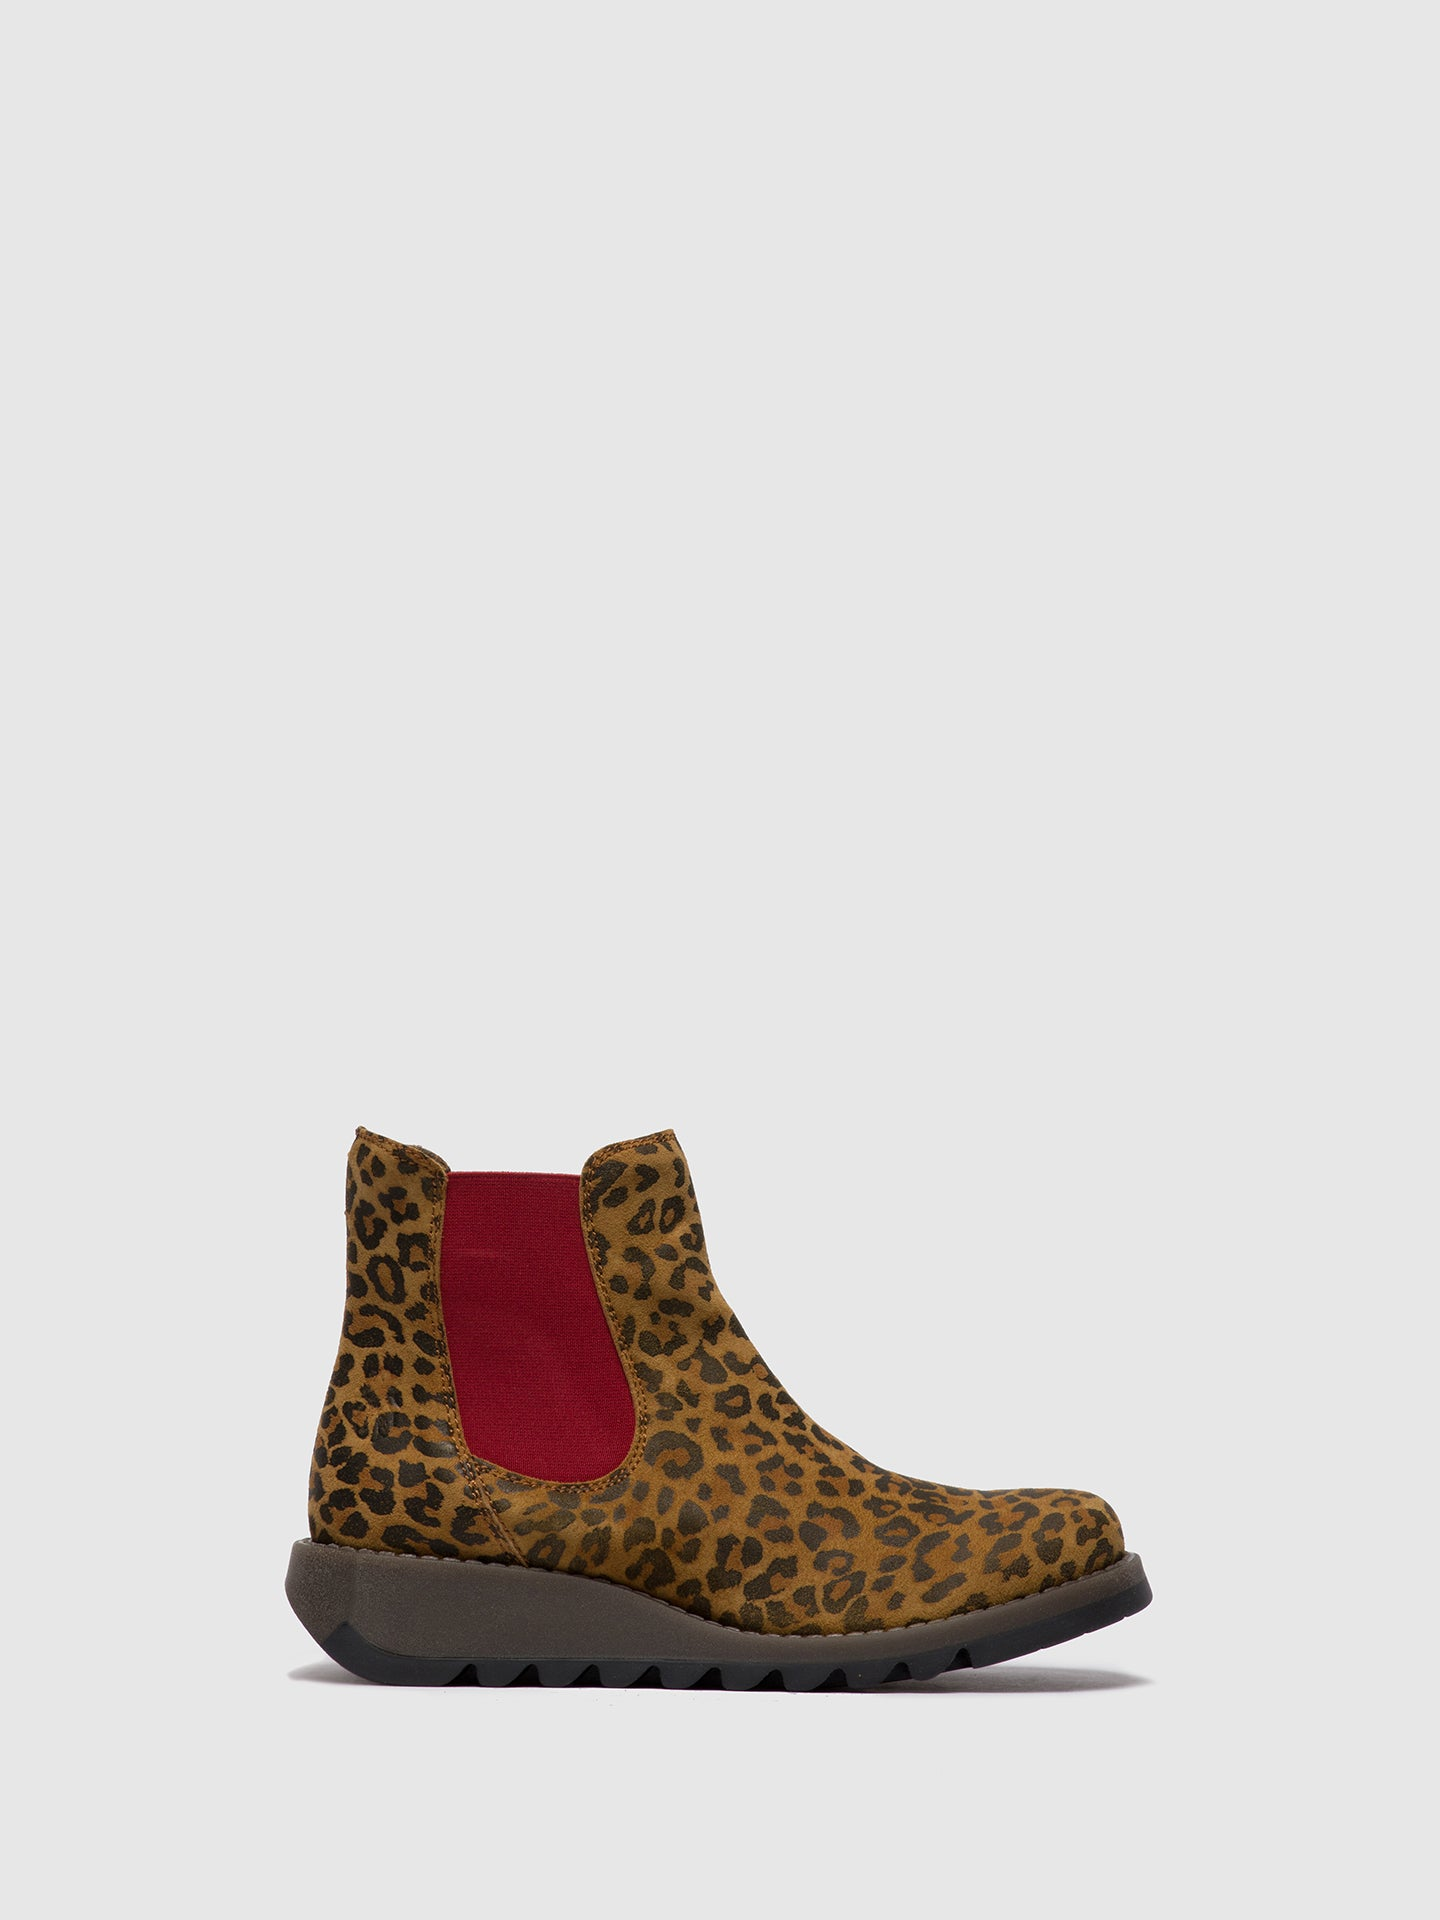 Fly London Botins Chelsea SALV CHEETAH TAN (RED ELASTIC)